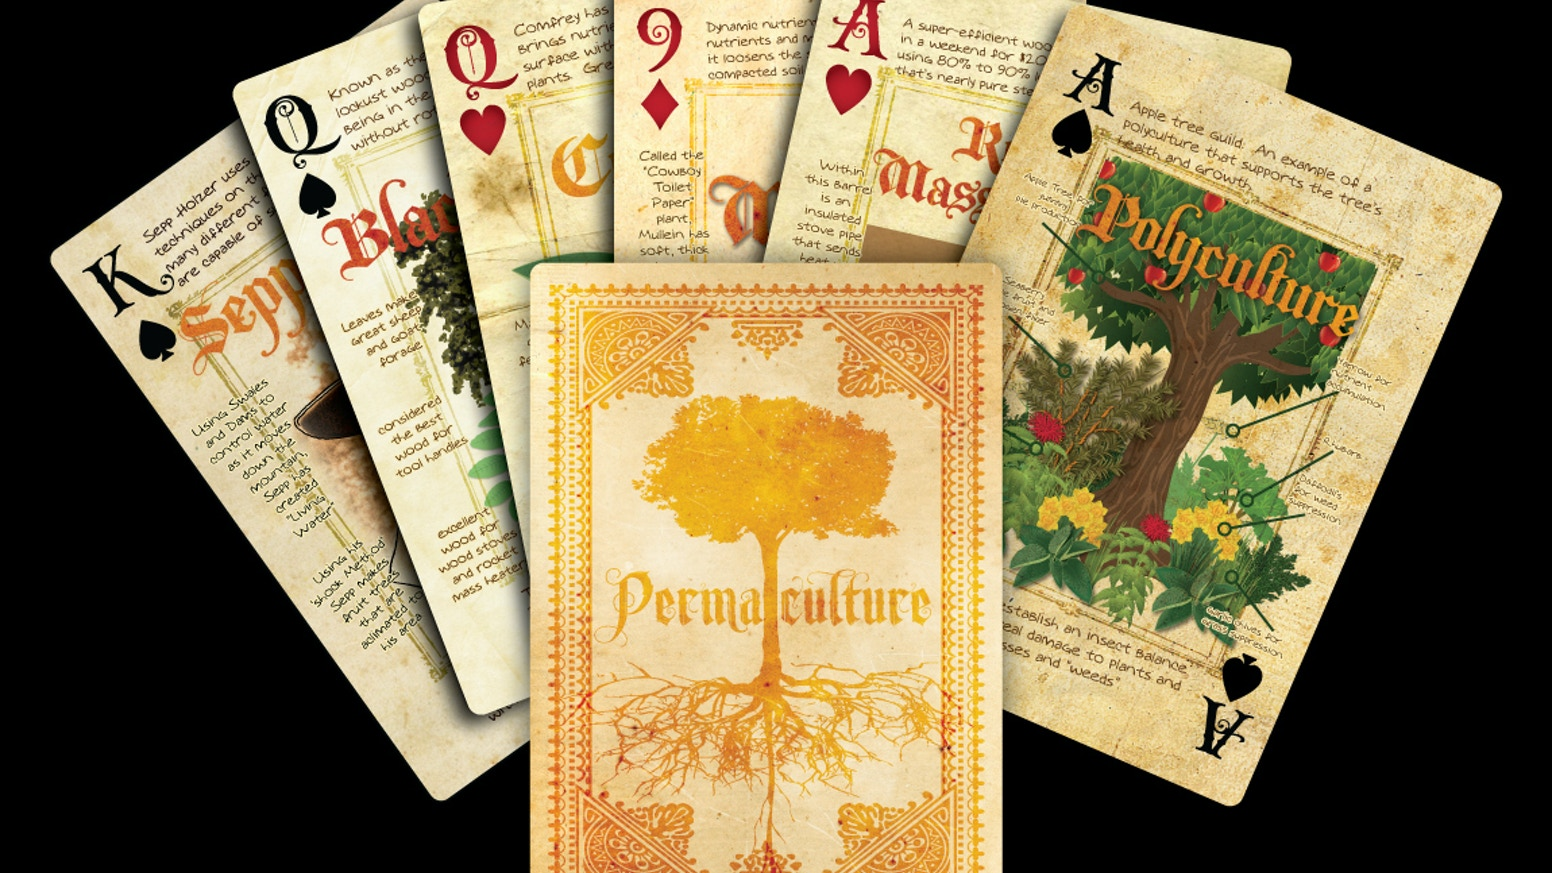 54 cards, each packed with permaculture information.  People, plants, ideas, animals, techniques ...